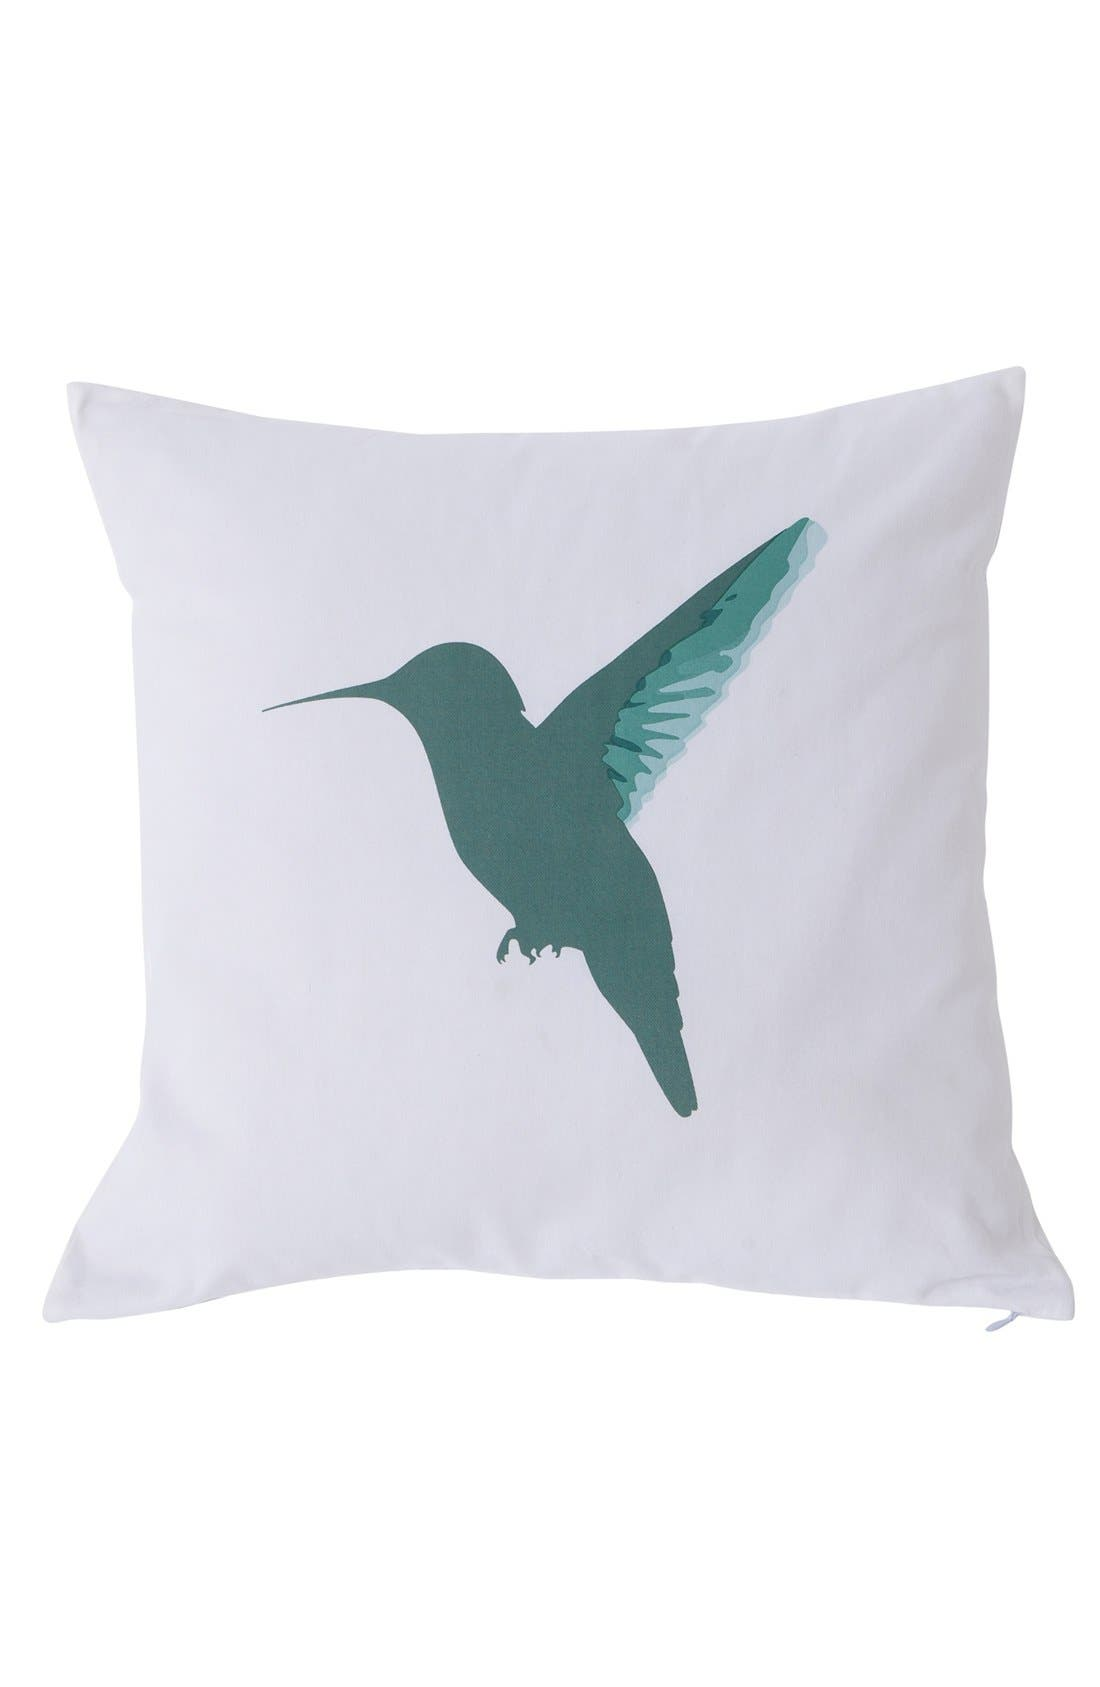 Reversible Hummingbird Pillow,                             Main thumbnail 1, color,                             White/ Green/ Spice